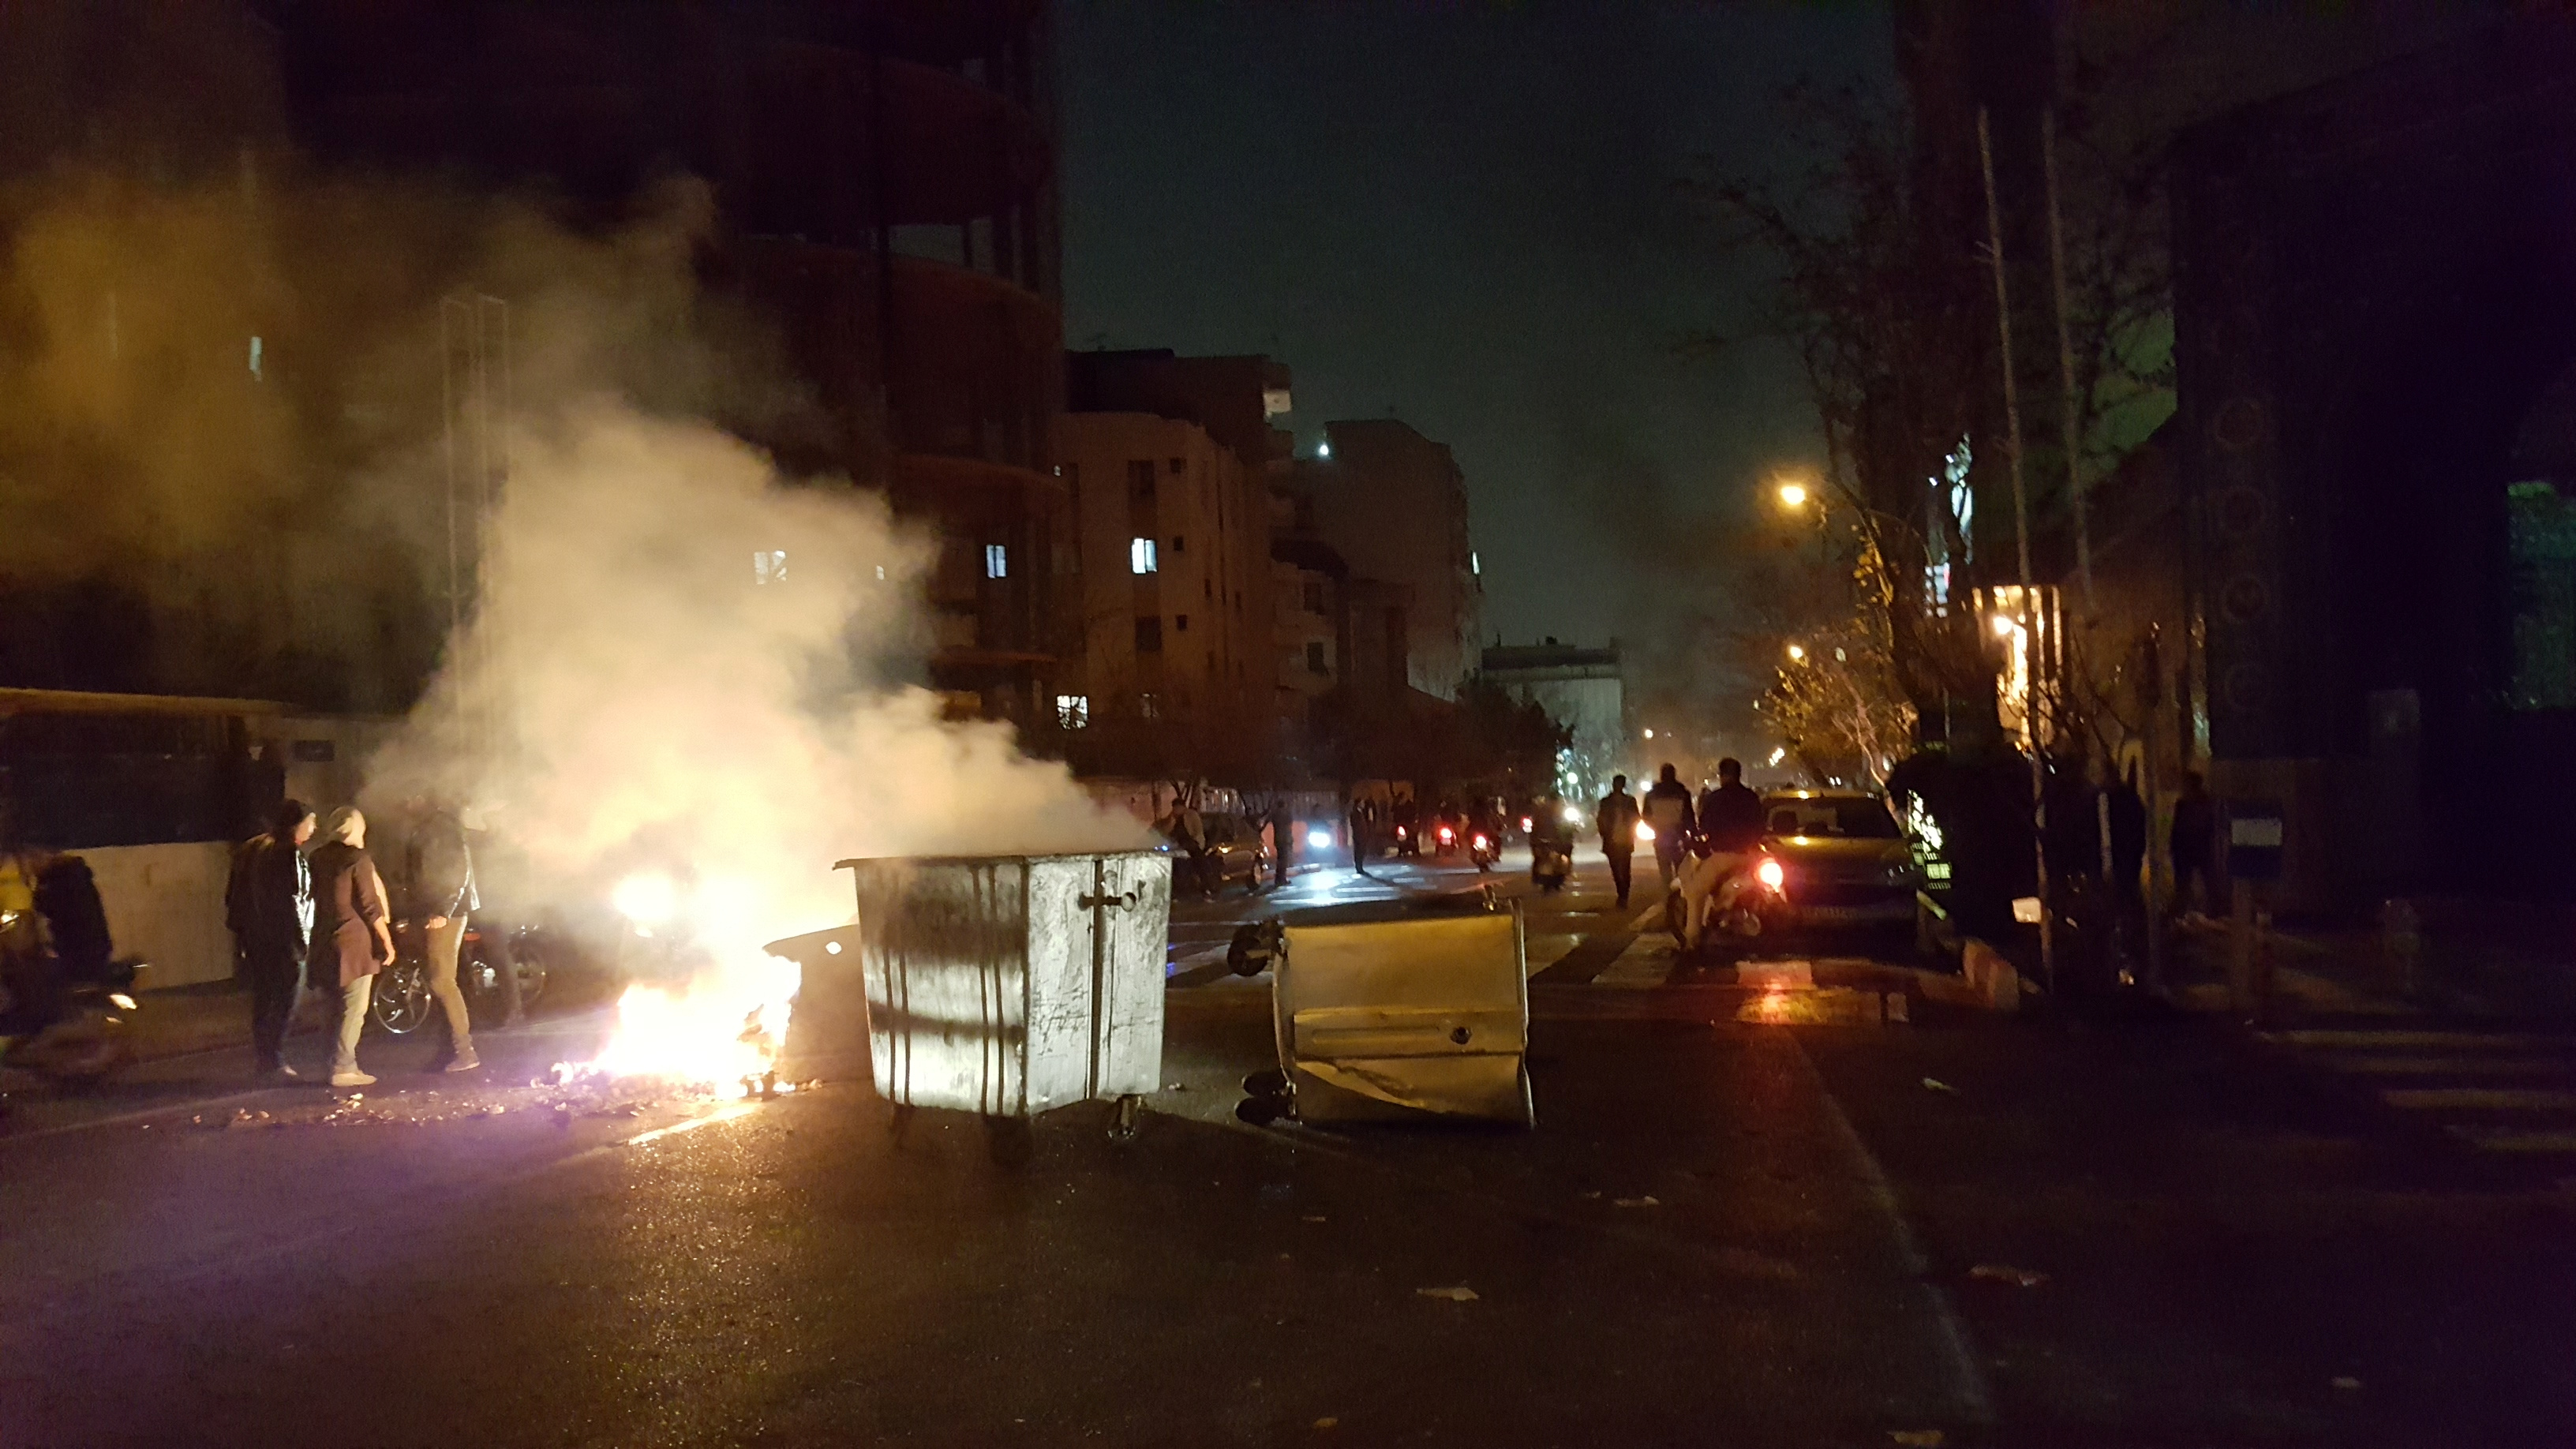 People protest in Tehran, Iran, Dec. 30, 2017 in in this picture obtained from social media.